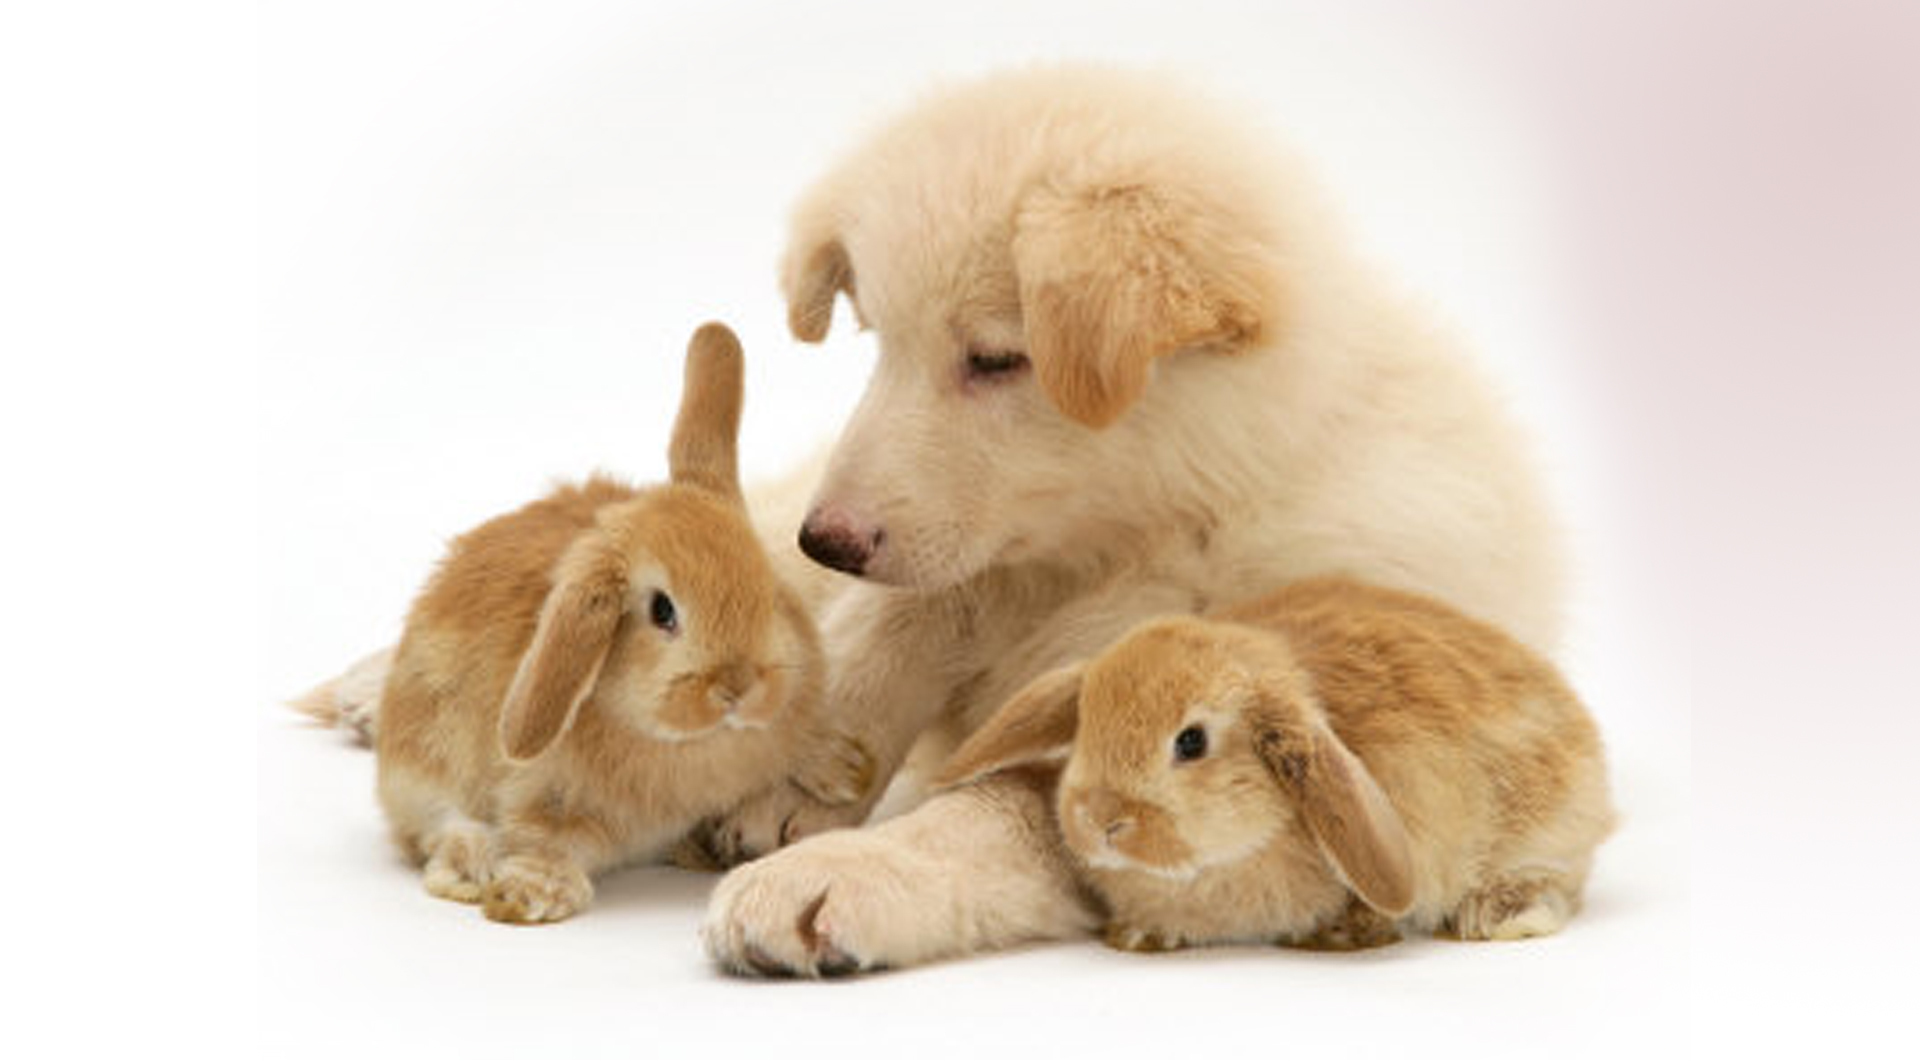 17040 download wallpaper Animals, Dogs, Rabbits screensavers and pictures for free